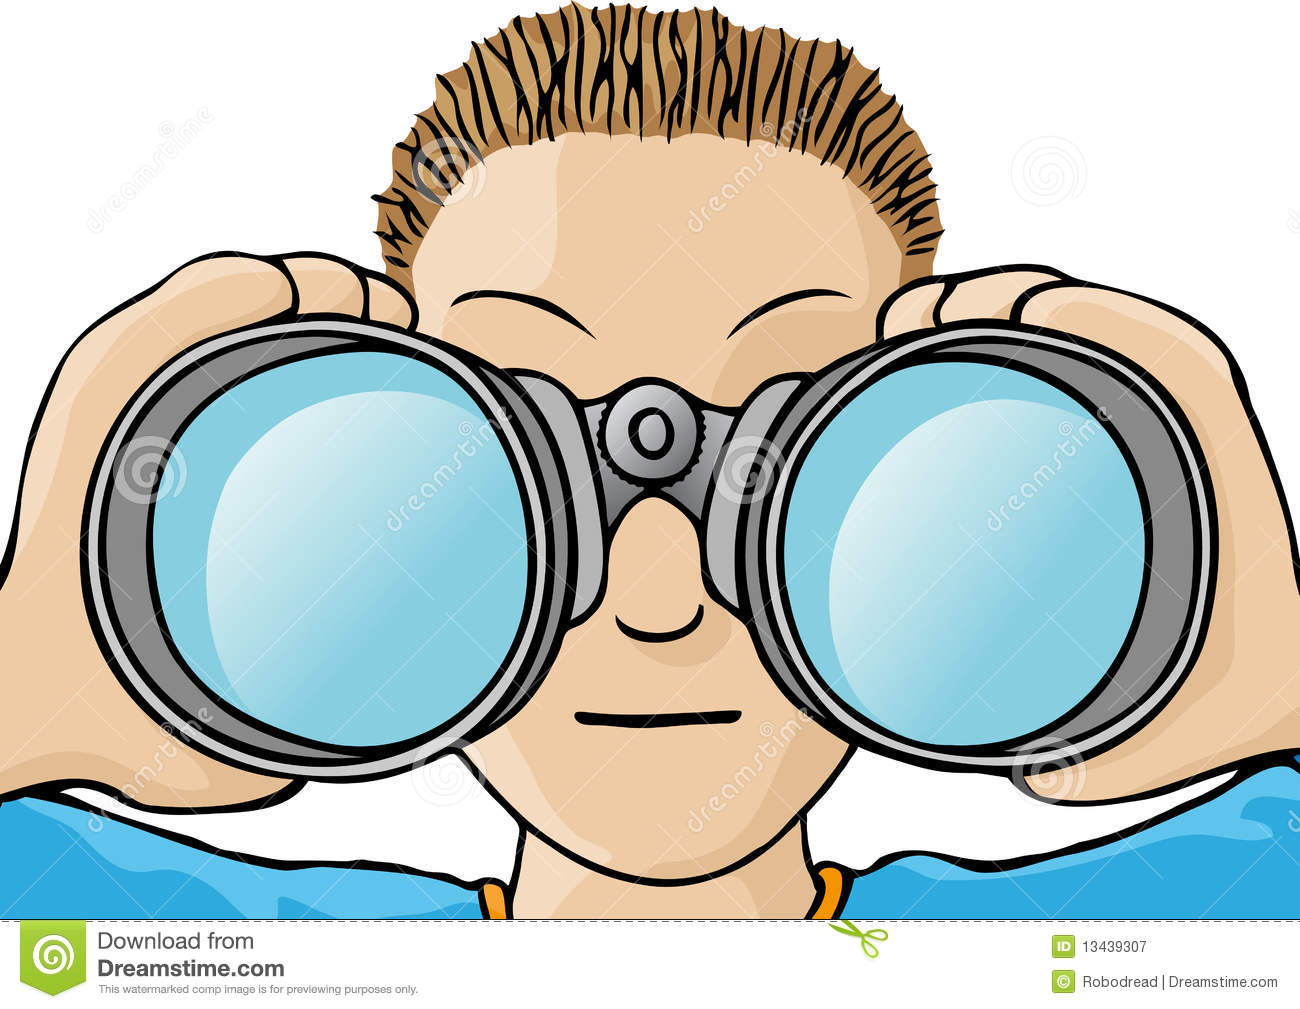 Looking through binoculars clipart picture freeuse stock Binoculars Clipart | Free download best Binoculars Clipart on ... picture freeuse stock